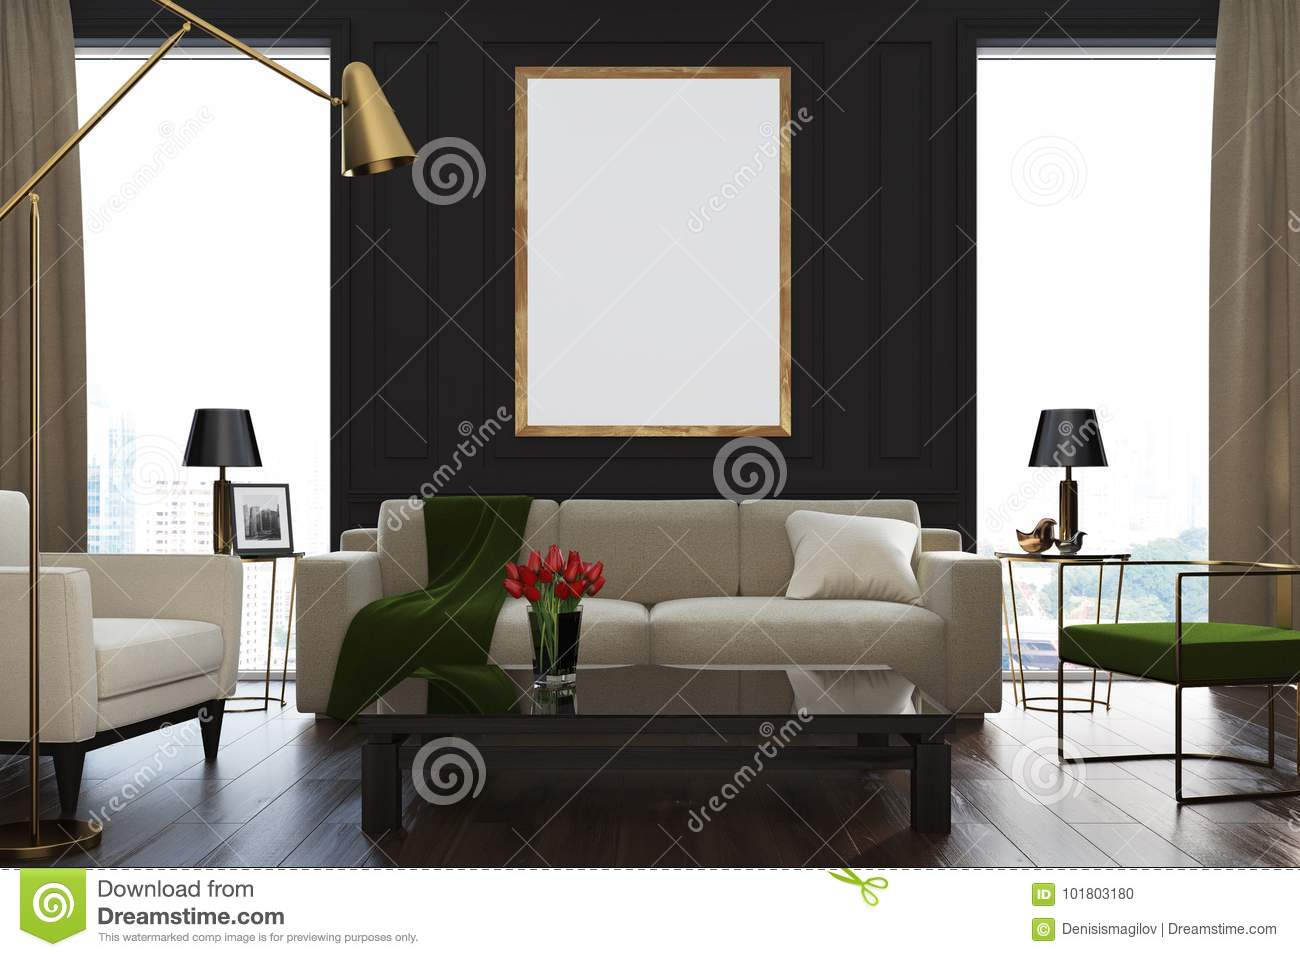 Wonderful Black Living Room Interior With Loft Windows, Beige Curtains, A Beige Sofa,  Green And Beige Armchairs, A Coffee Table And A Framed Poster.